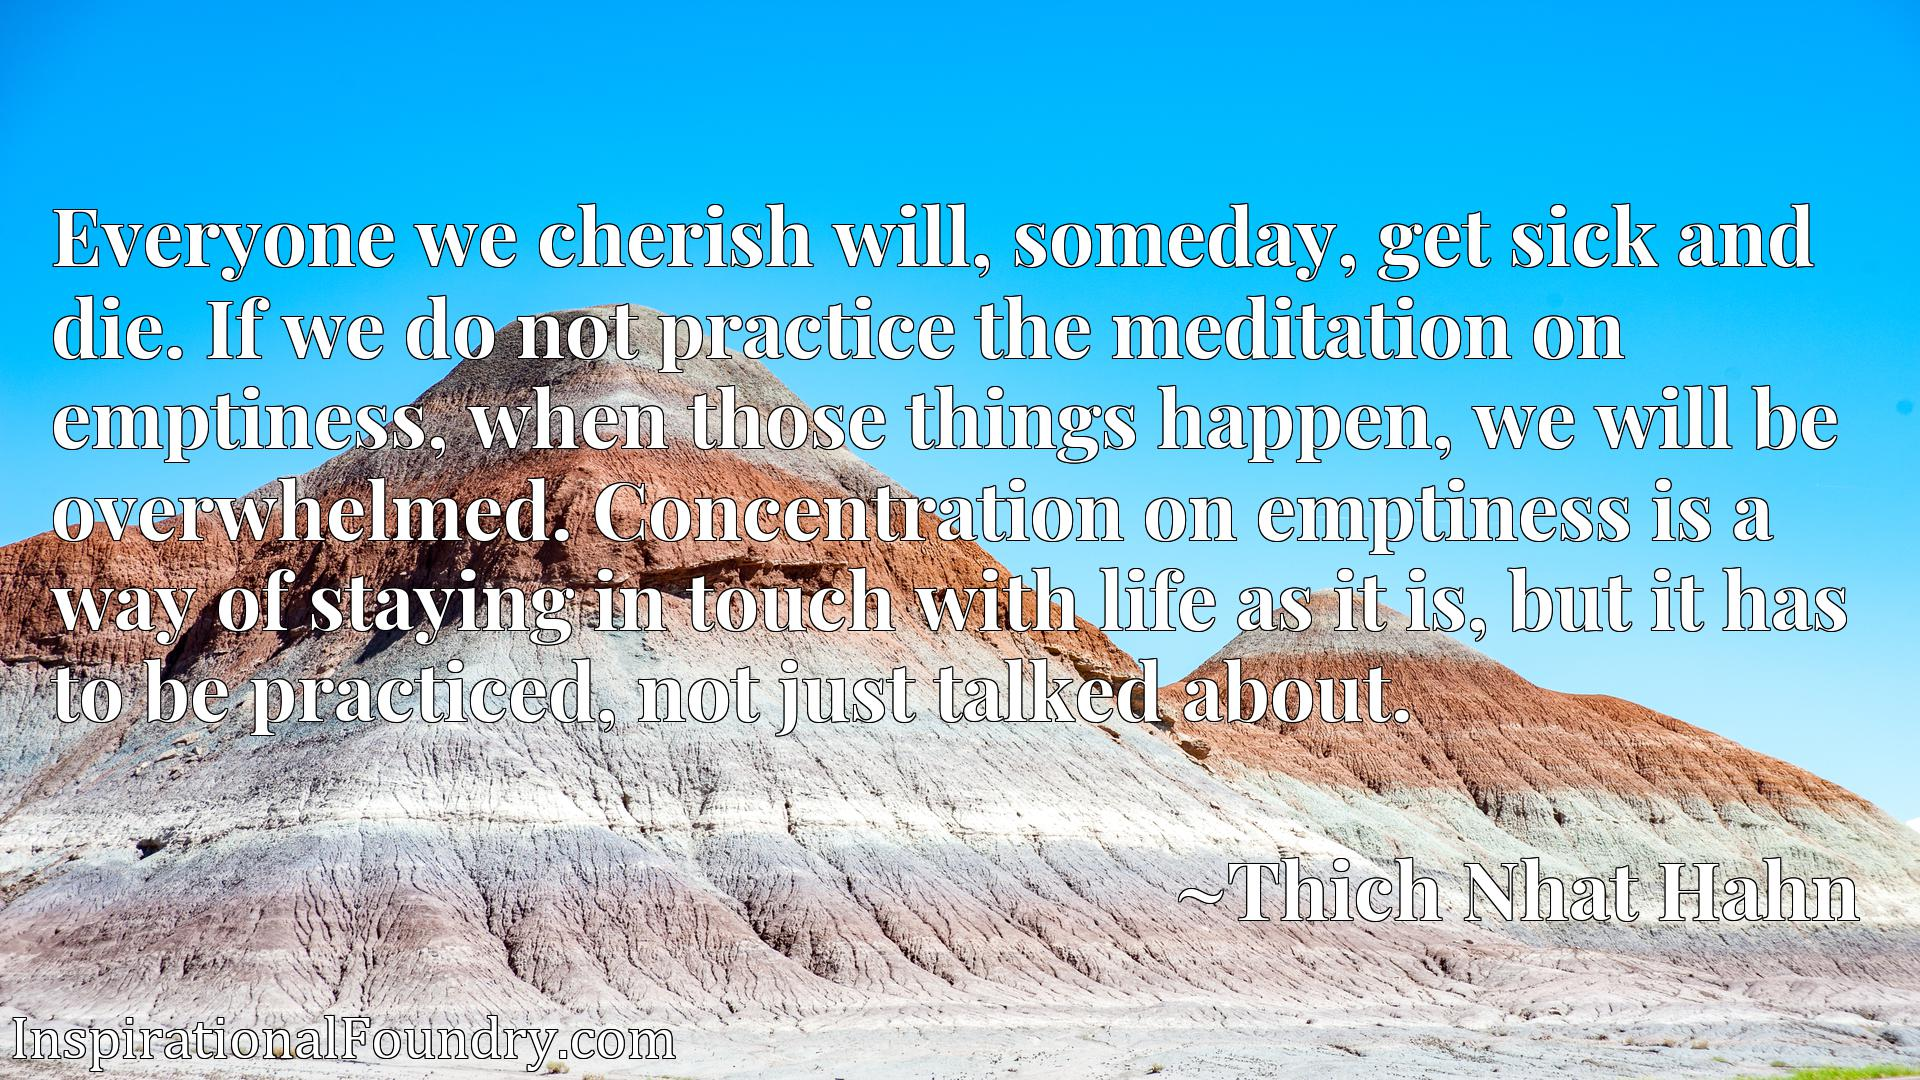 Quote Picture :Everyone we cherish will, someday, get sick and die. If we do not practice the meditation on emptiness, when those things happen, we will be overwhelmed. Concentration on emptiness is a way of staying in touch with life as it is, but it has to be practiced, not just talked about.